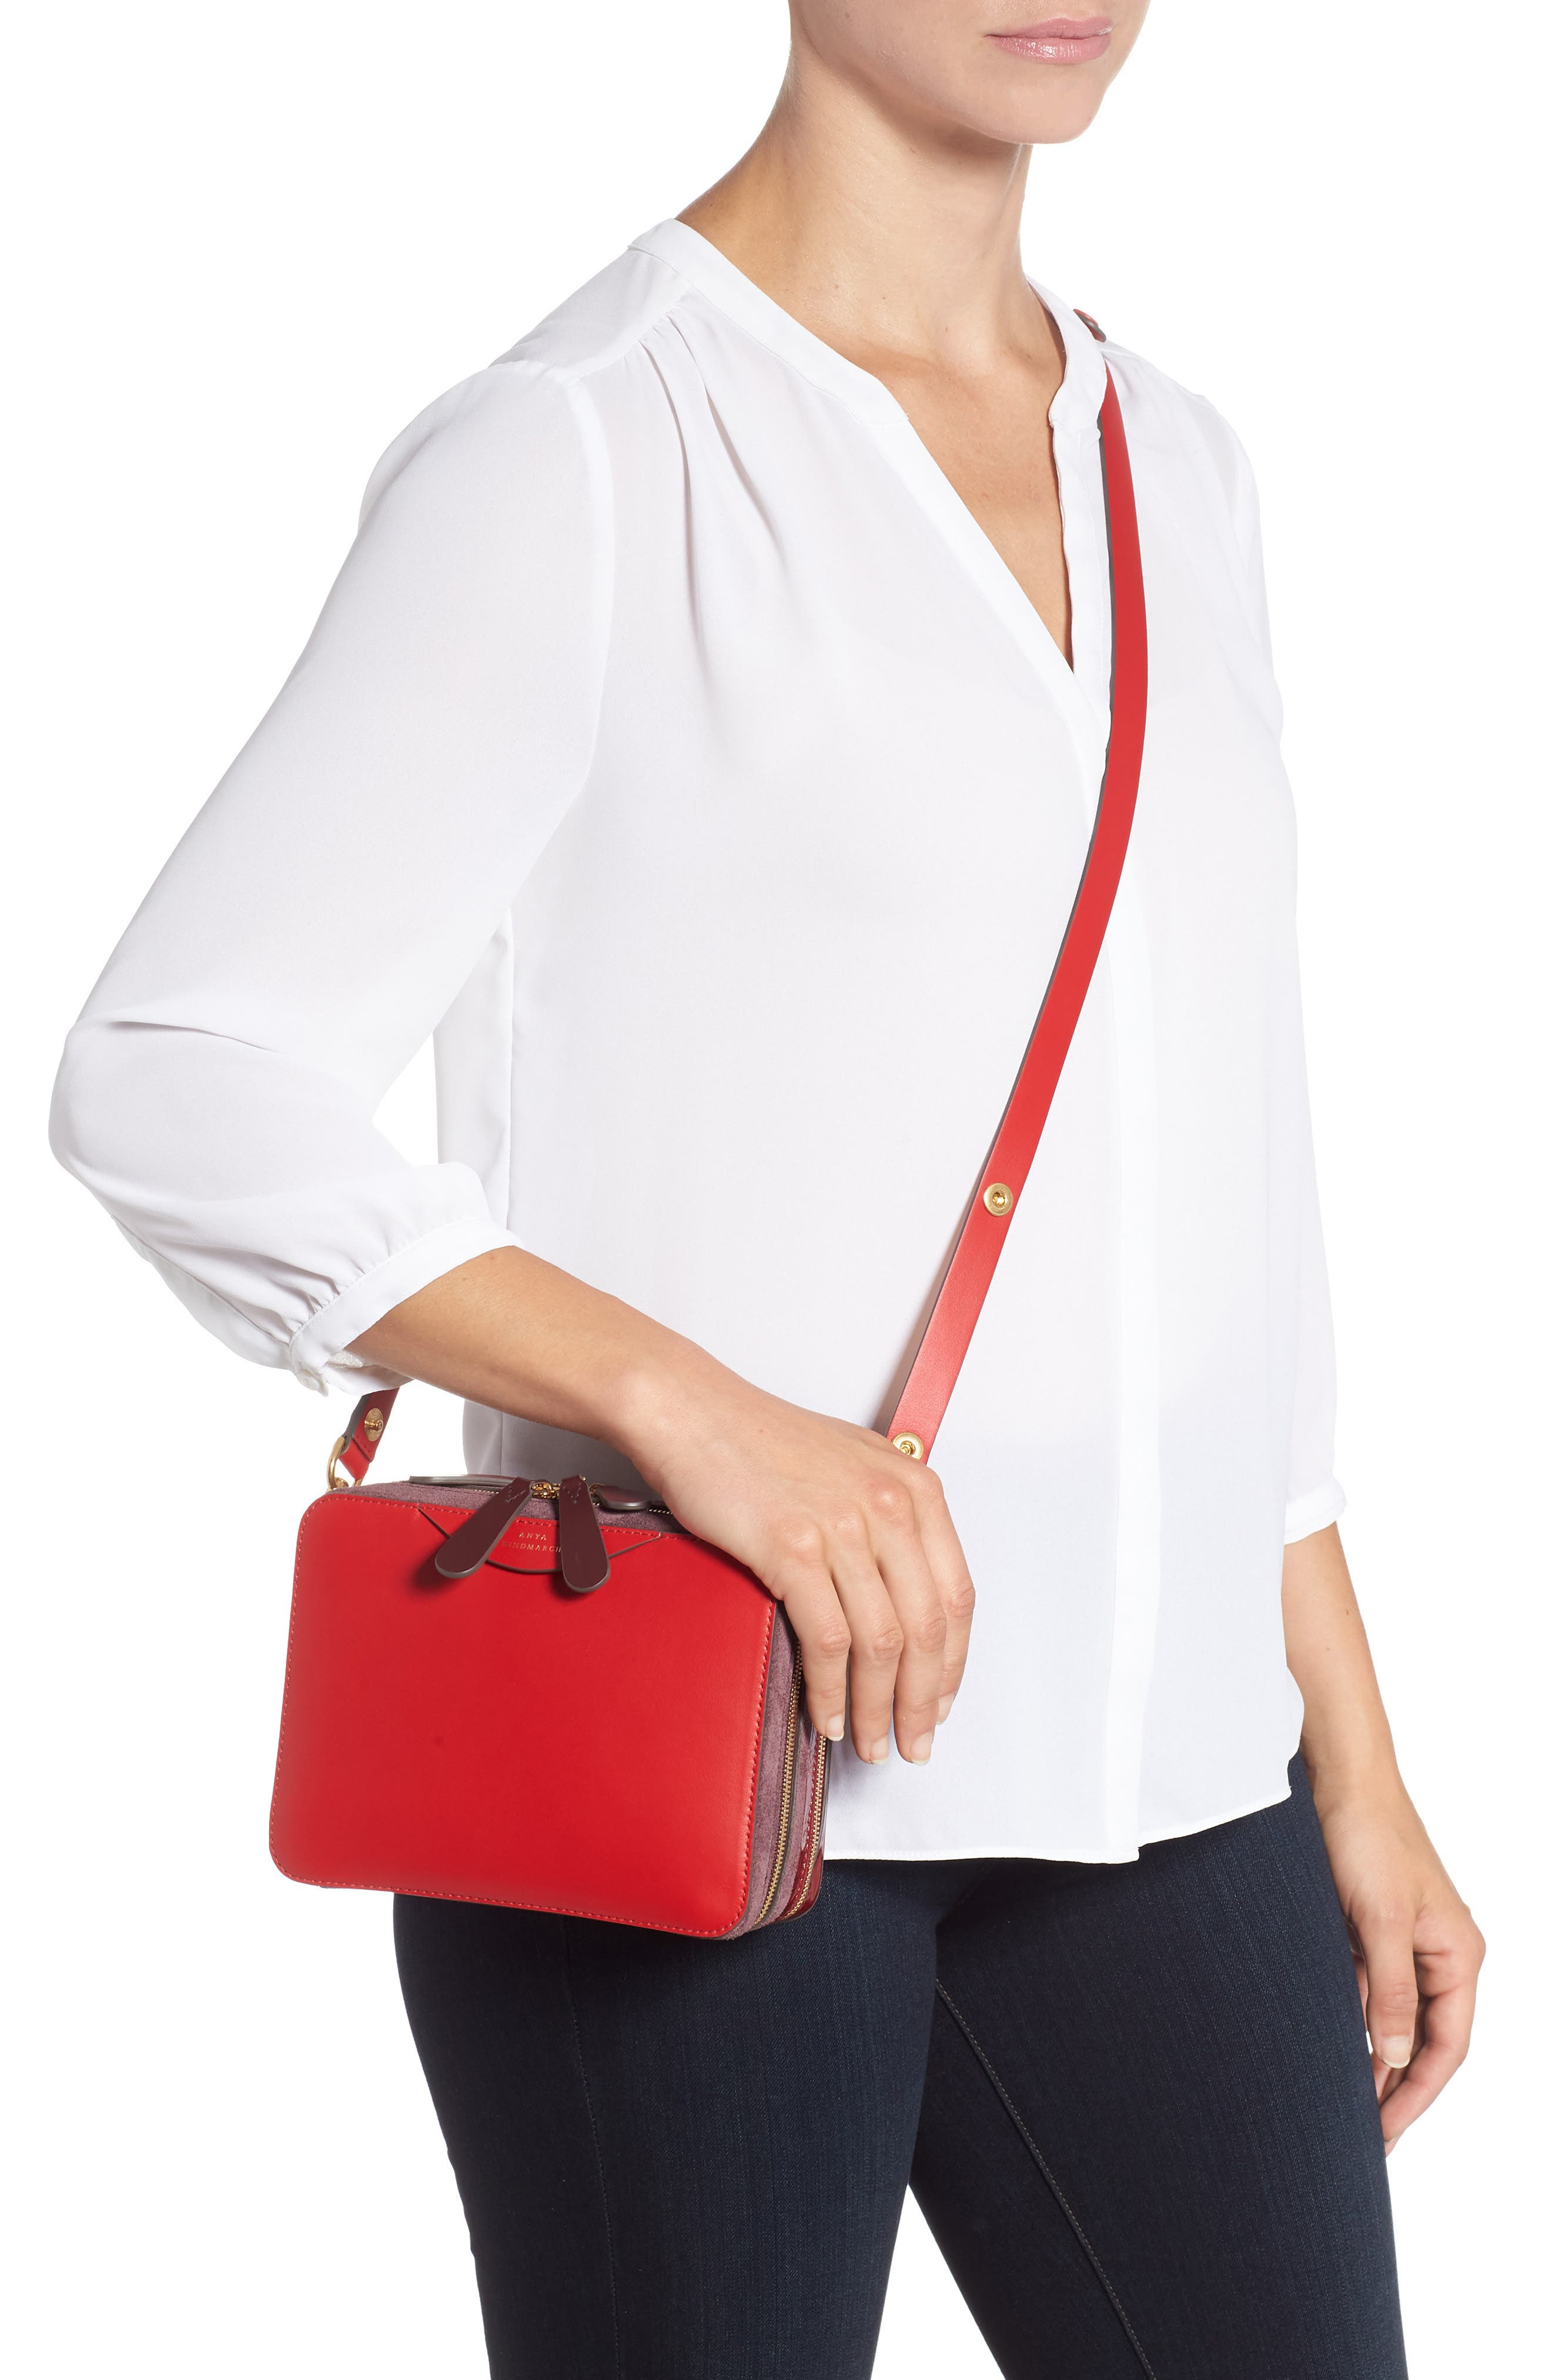 The Double Stack Leather Crossbody Bag,                             Alternate thumbnail 2, color,                             BRIGHT RED/ OXBLOOD